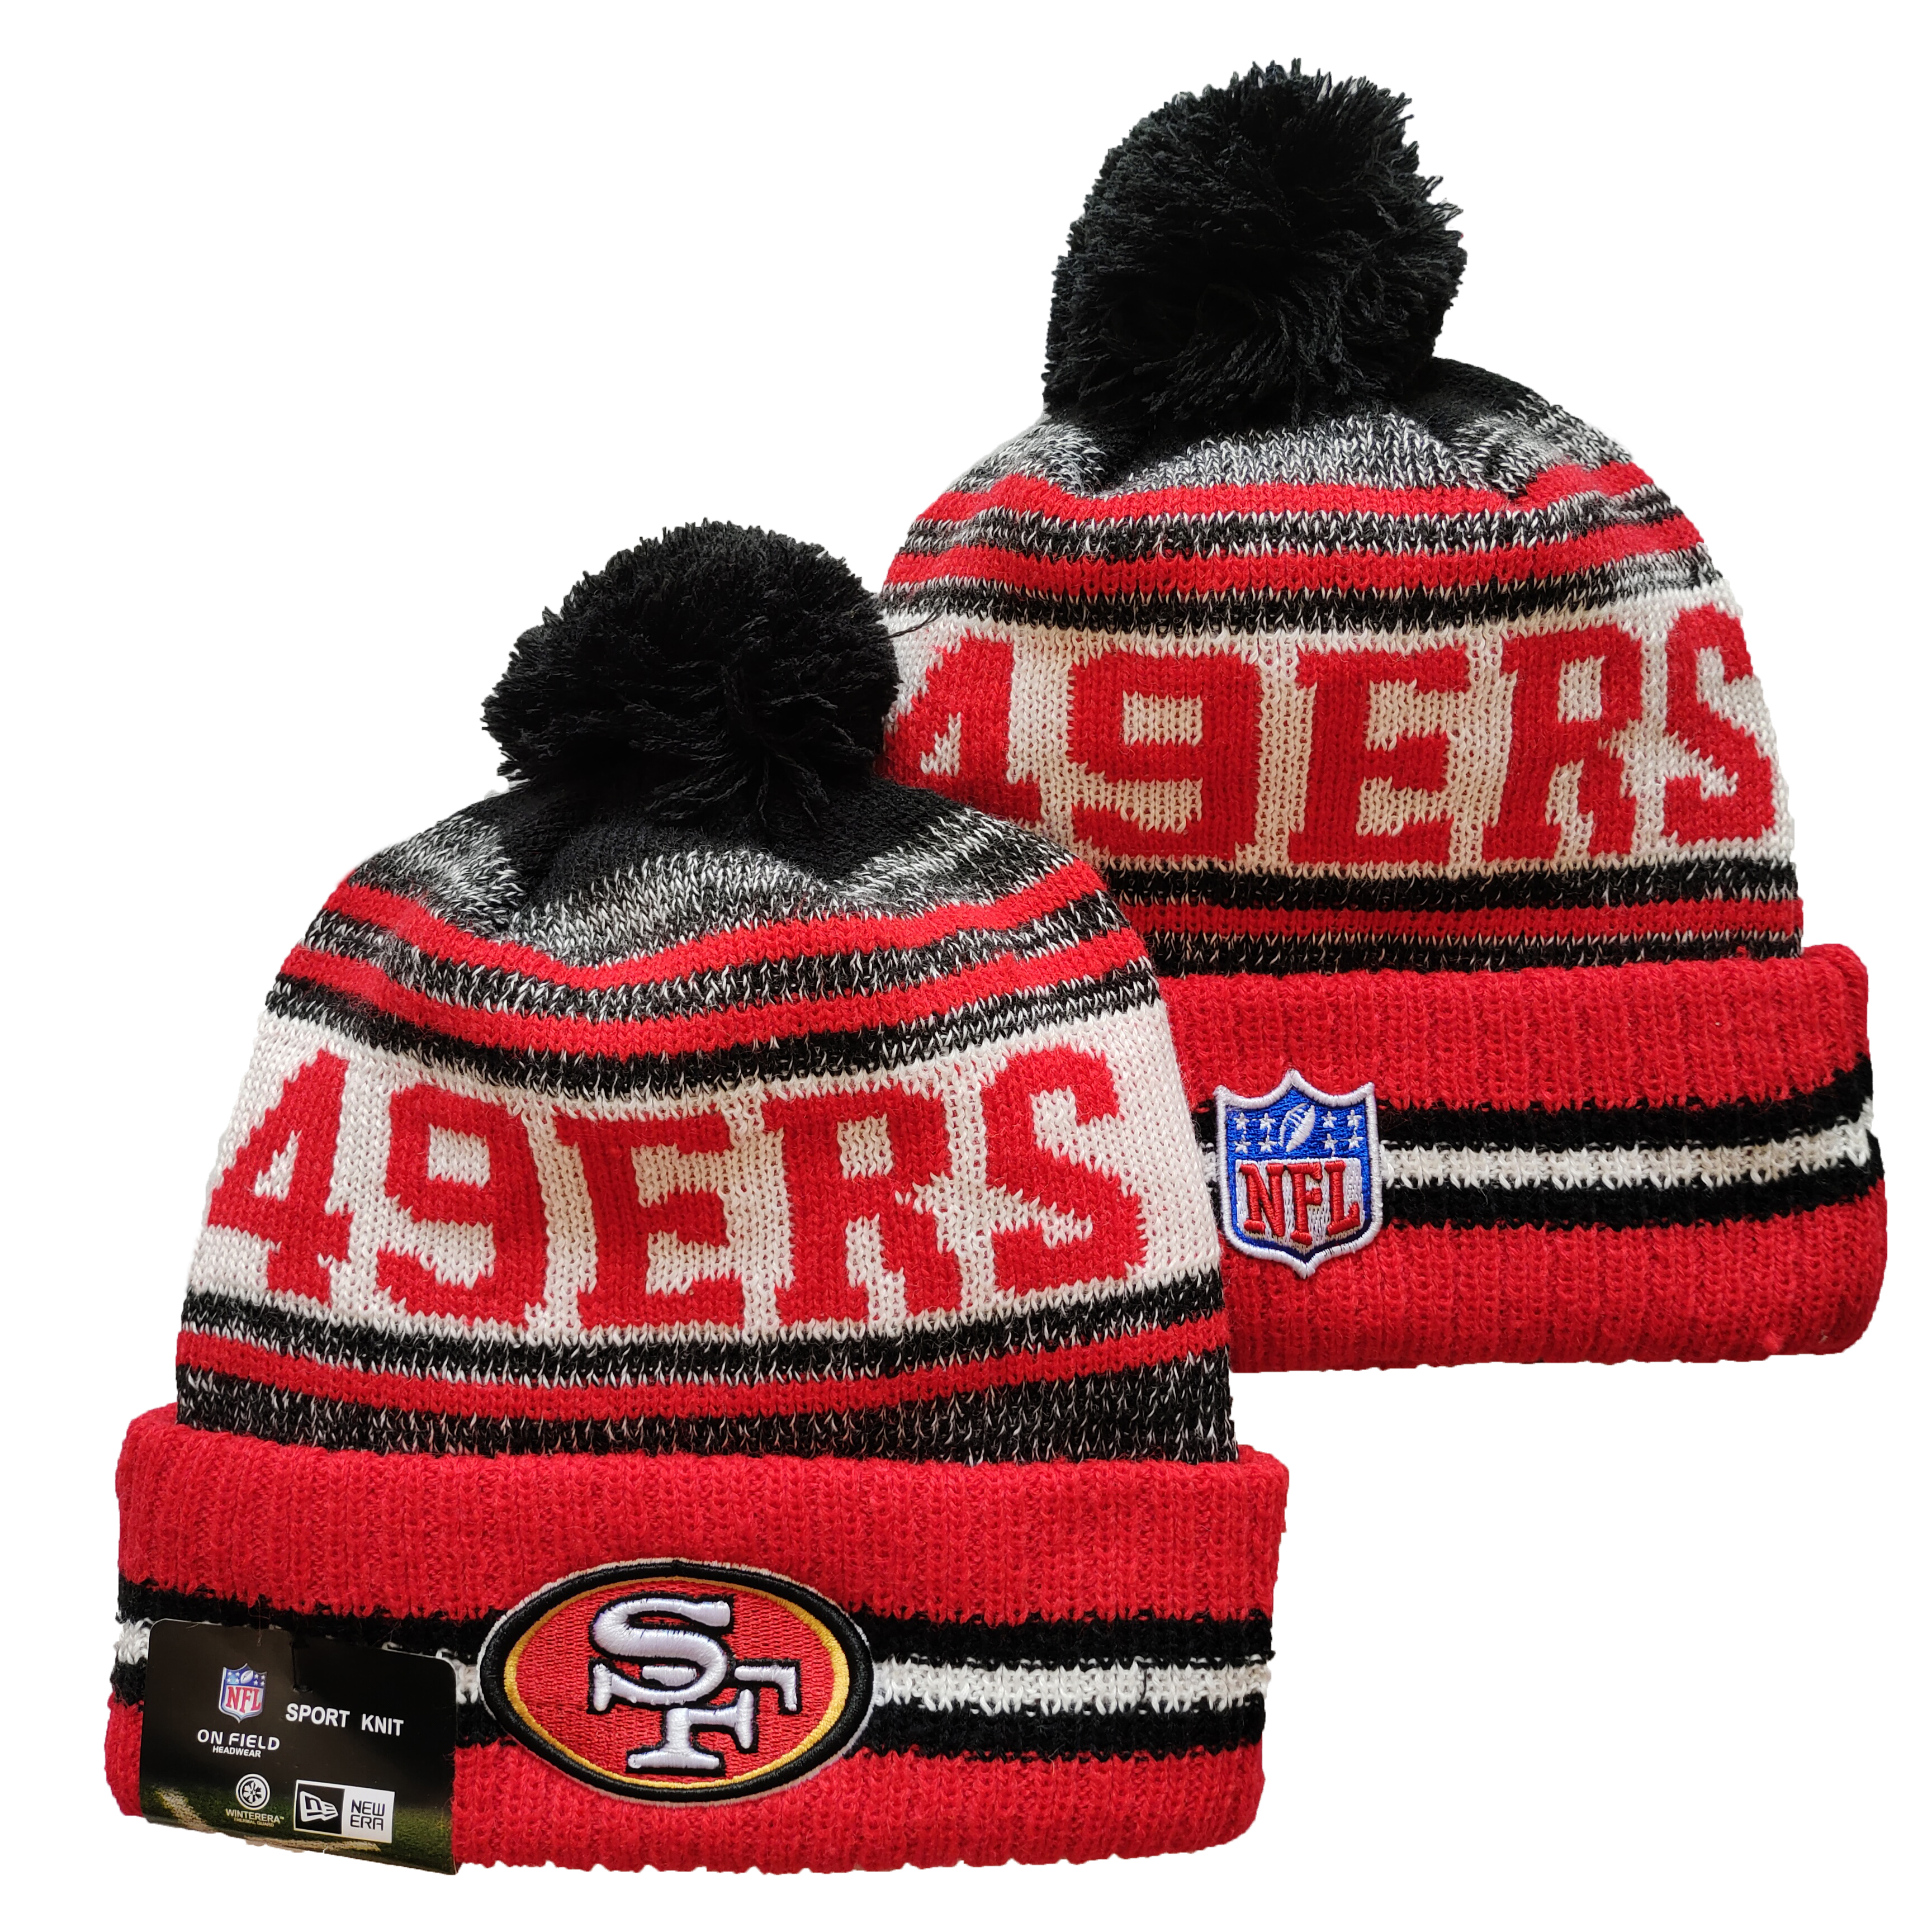 49ers Team Logo Red and Gray Pom Cuffed Knit Hat YD